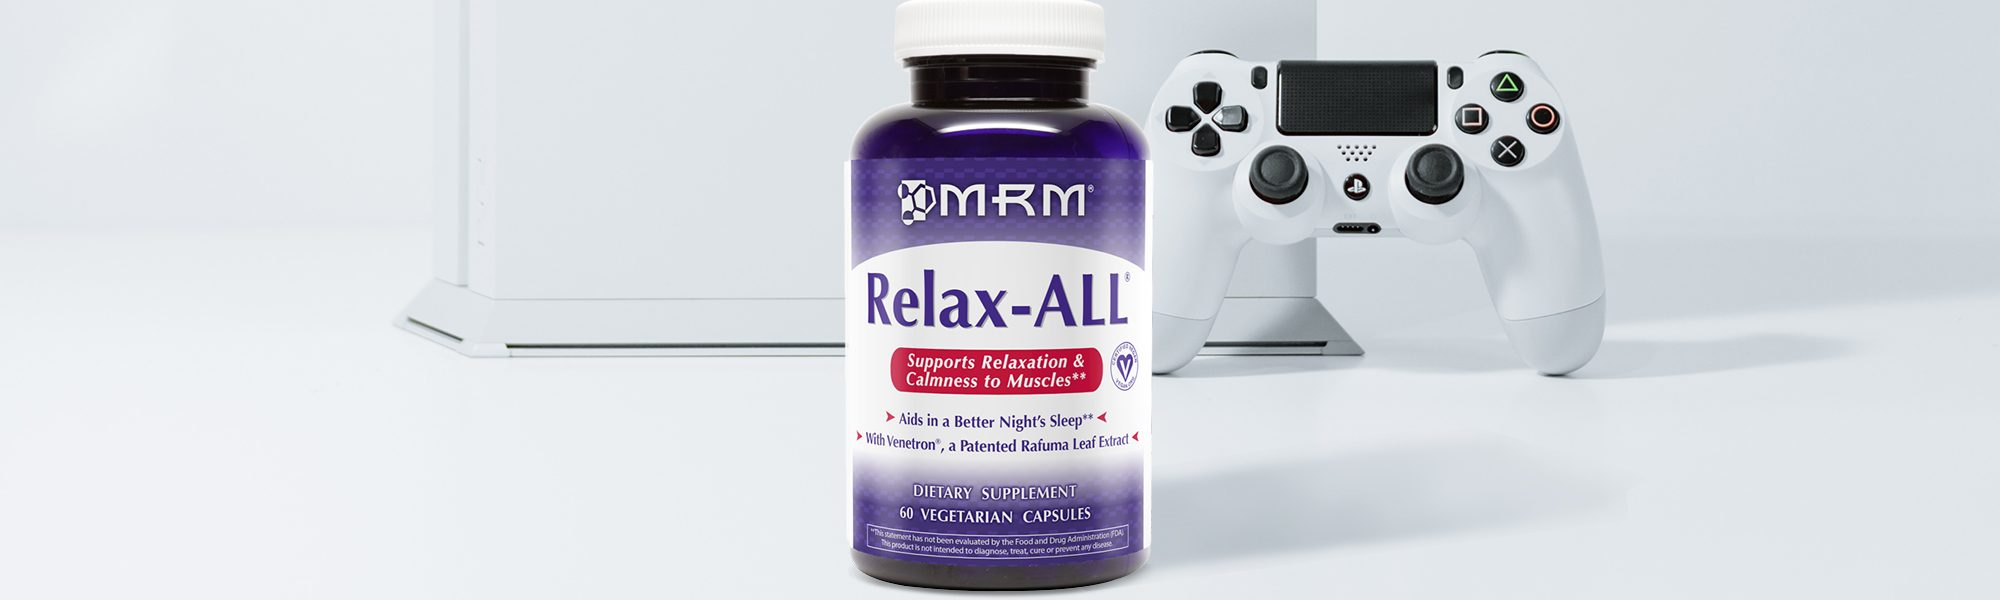 Relax-All Review (UPDATE: 2019) | BrainReference com